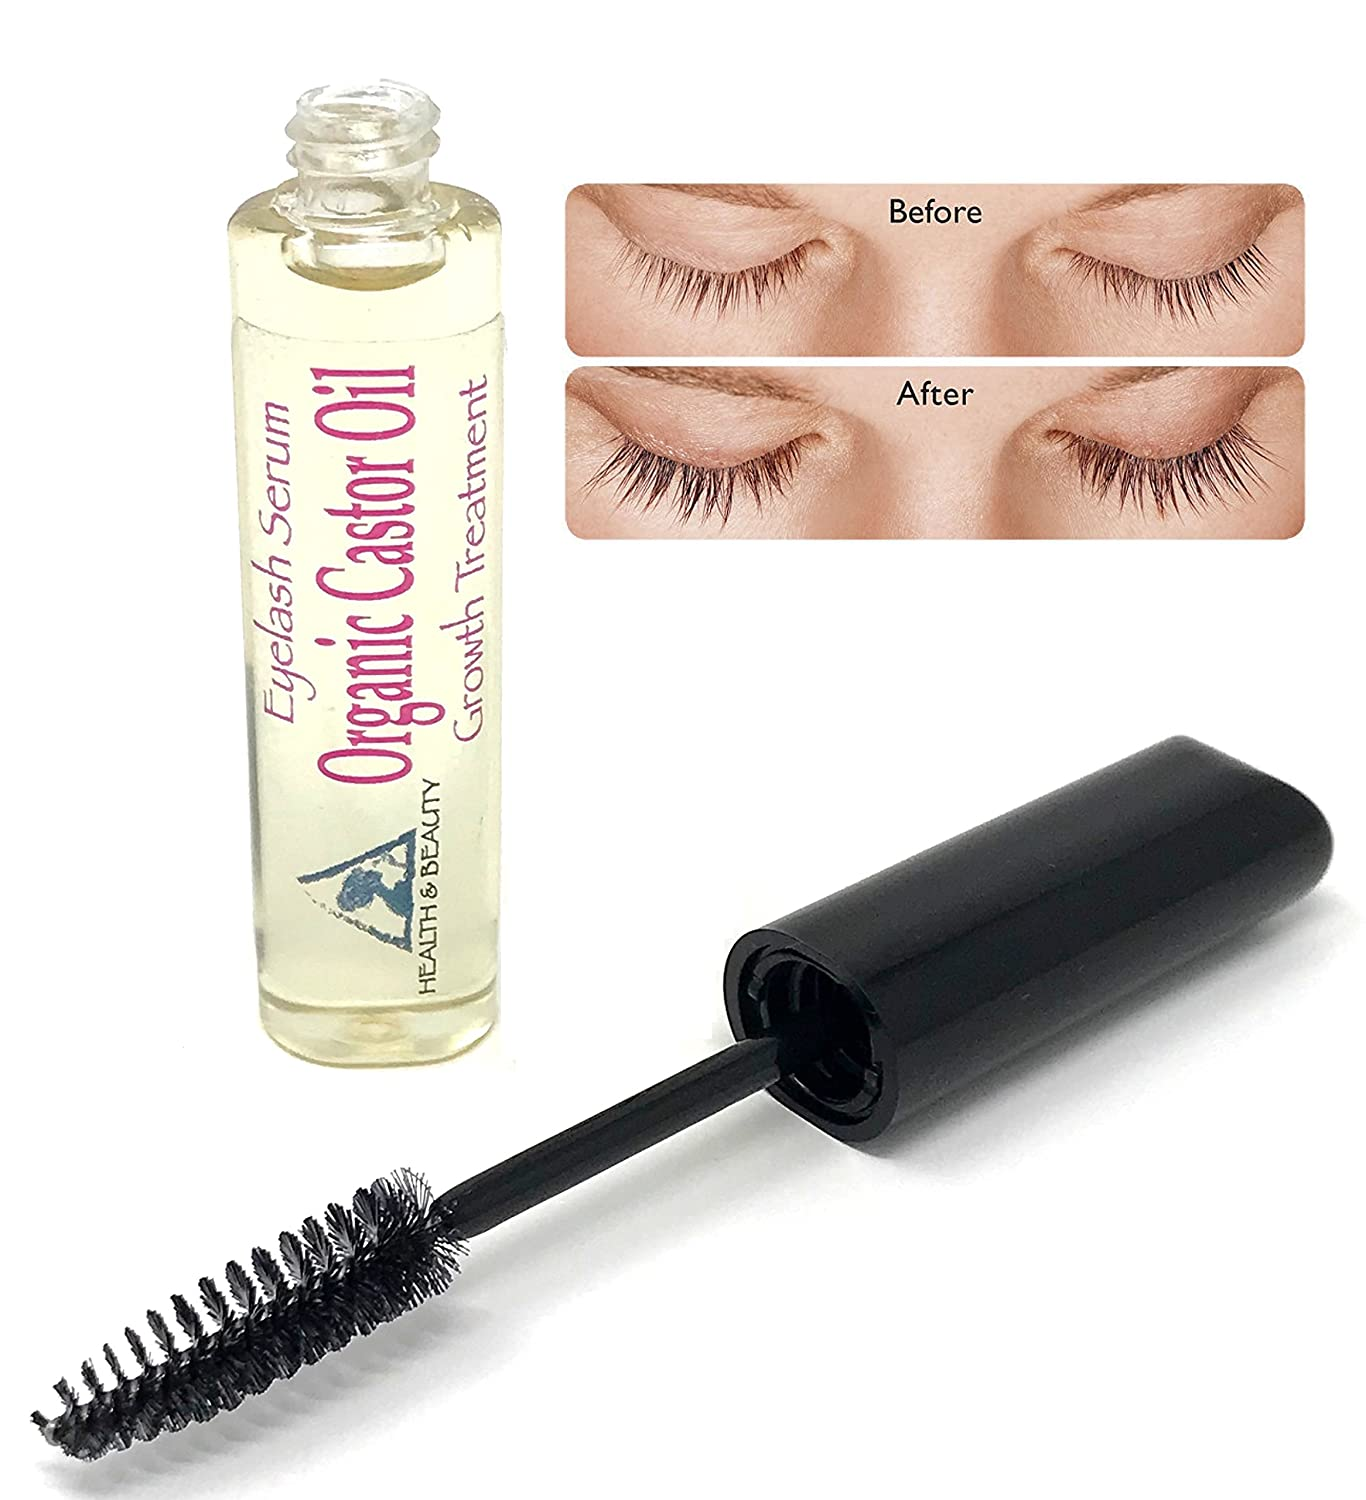 Castor Oil Stimulate Eyelash Growth Serum, Grows Longer, Thicker Eyelashes & Beautiful Eyebrows Cold Pressed Organic 100% Pure Hexane Free Brow Treatment in Mascara Tube H&B Oils Center Co.